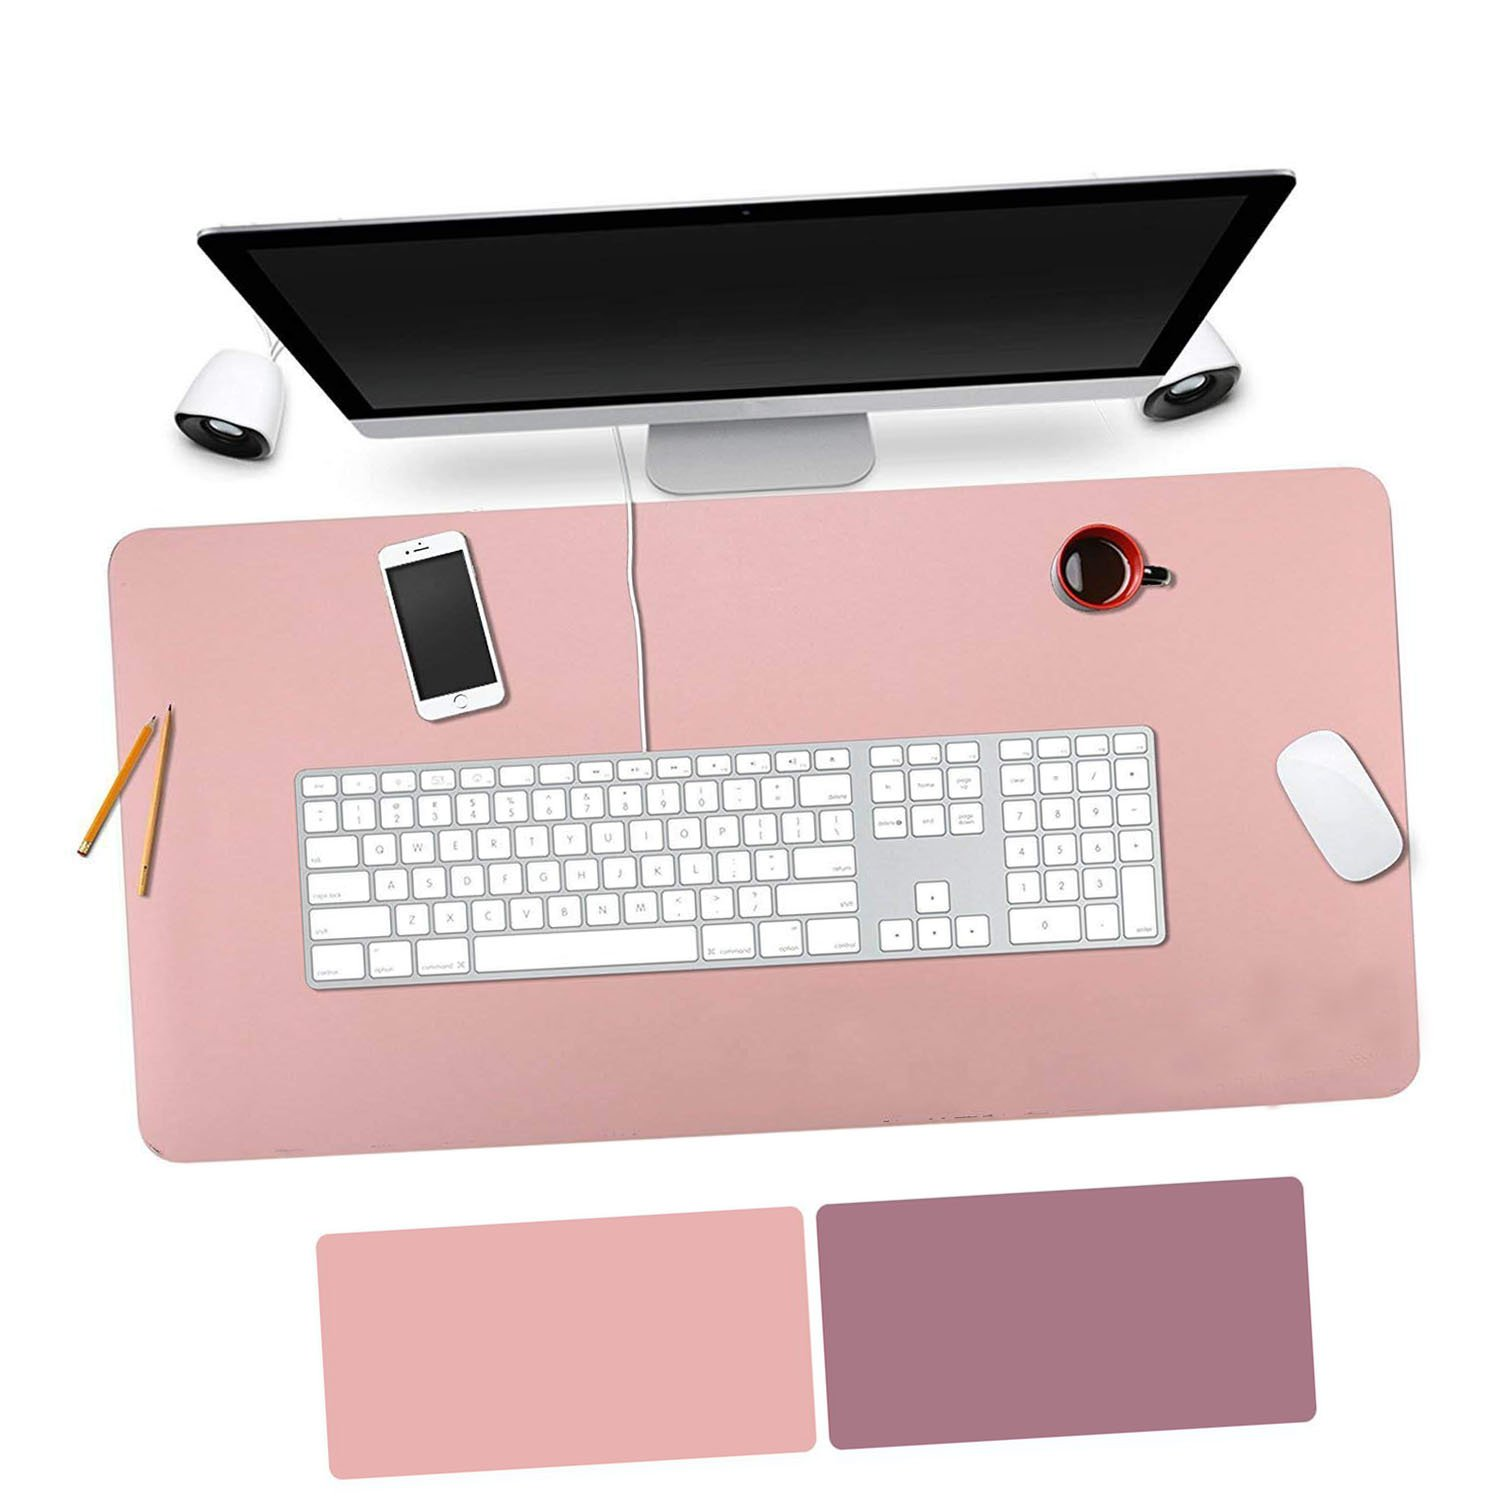 OuTera Leather Desk Pad Waterproof PU Laptop Writing Mat for Office and Home - 35.4''x15.8'' (Pink & Purple)